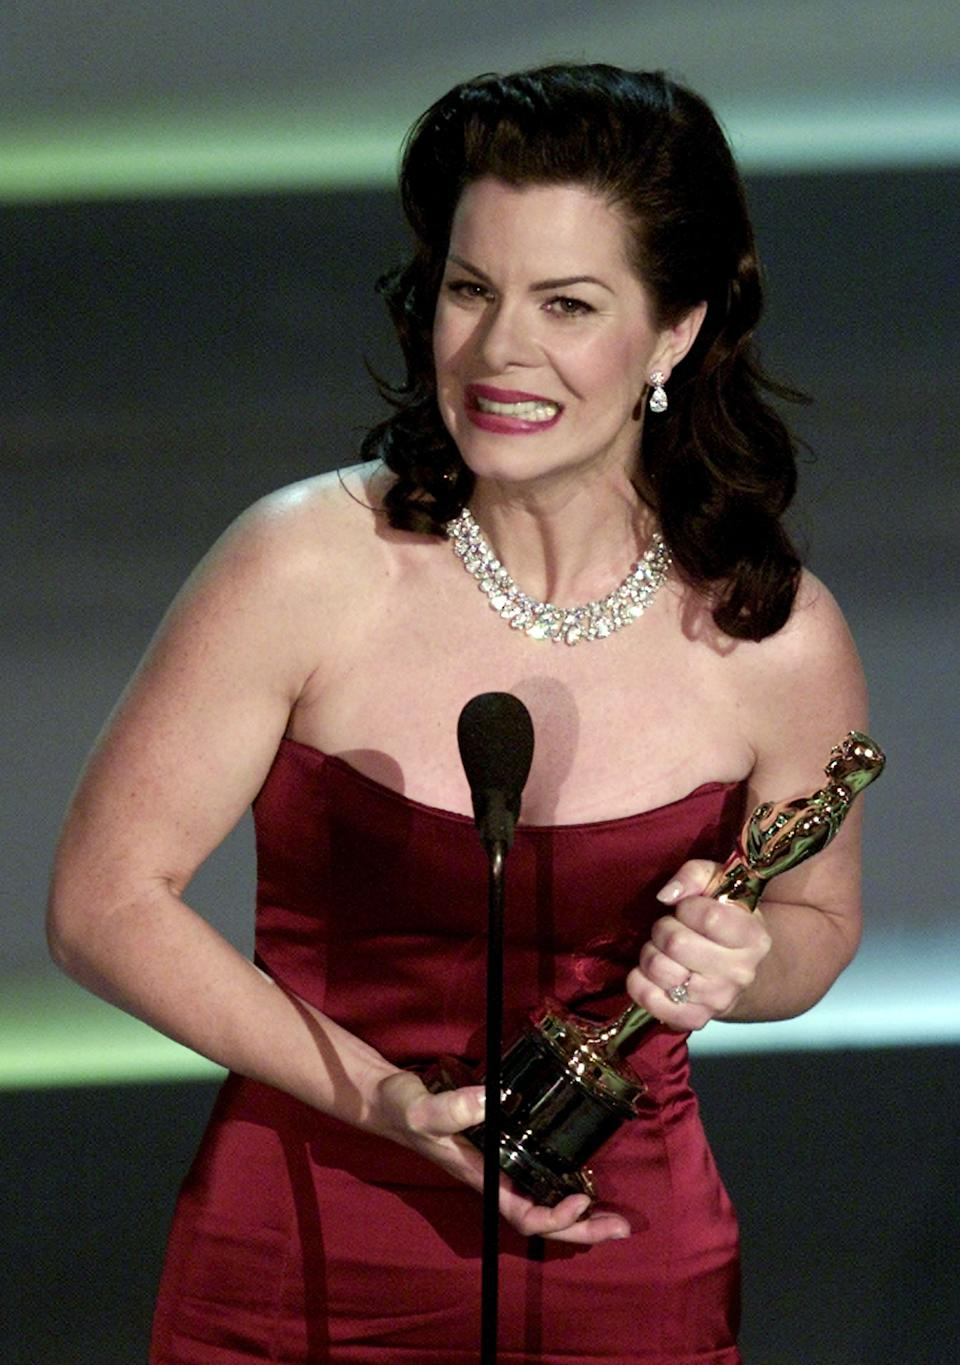 Marcia Gay Harden accepts her Oscar for Best Supporting Actress at the 73rd annual Academy Awards in Los Angeles March 25, 2001. Harden won for her role in the movie